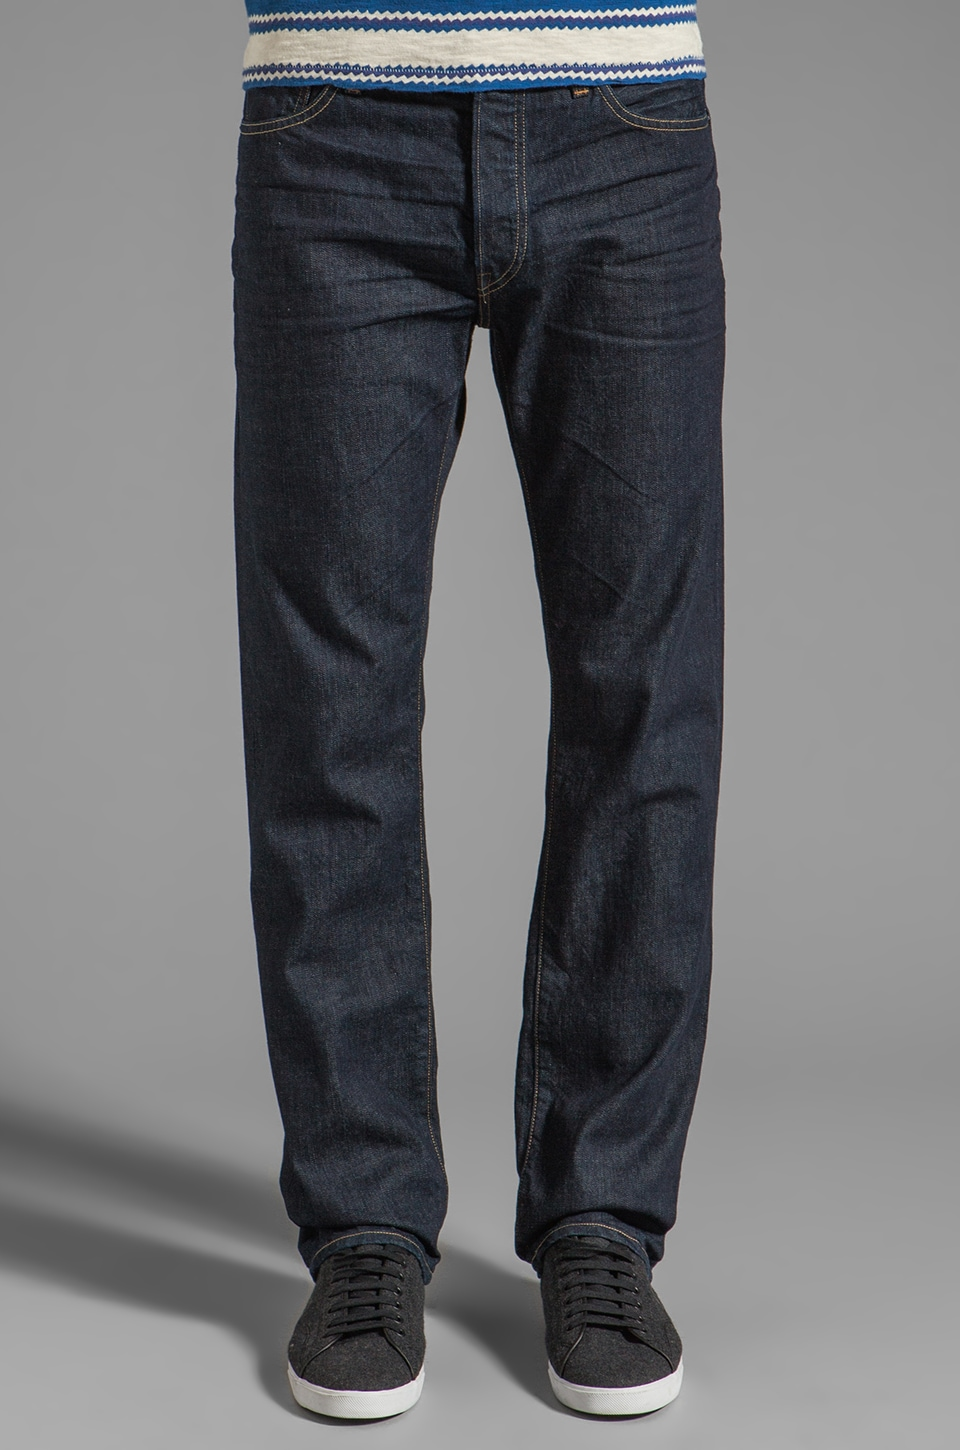 LEVI'S: Made & Crafted Ruler Straight Made in the USA Jeans in Crane